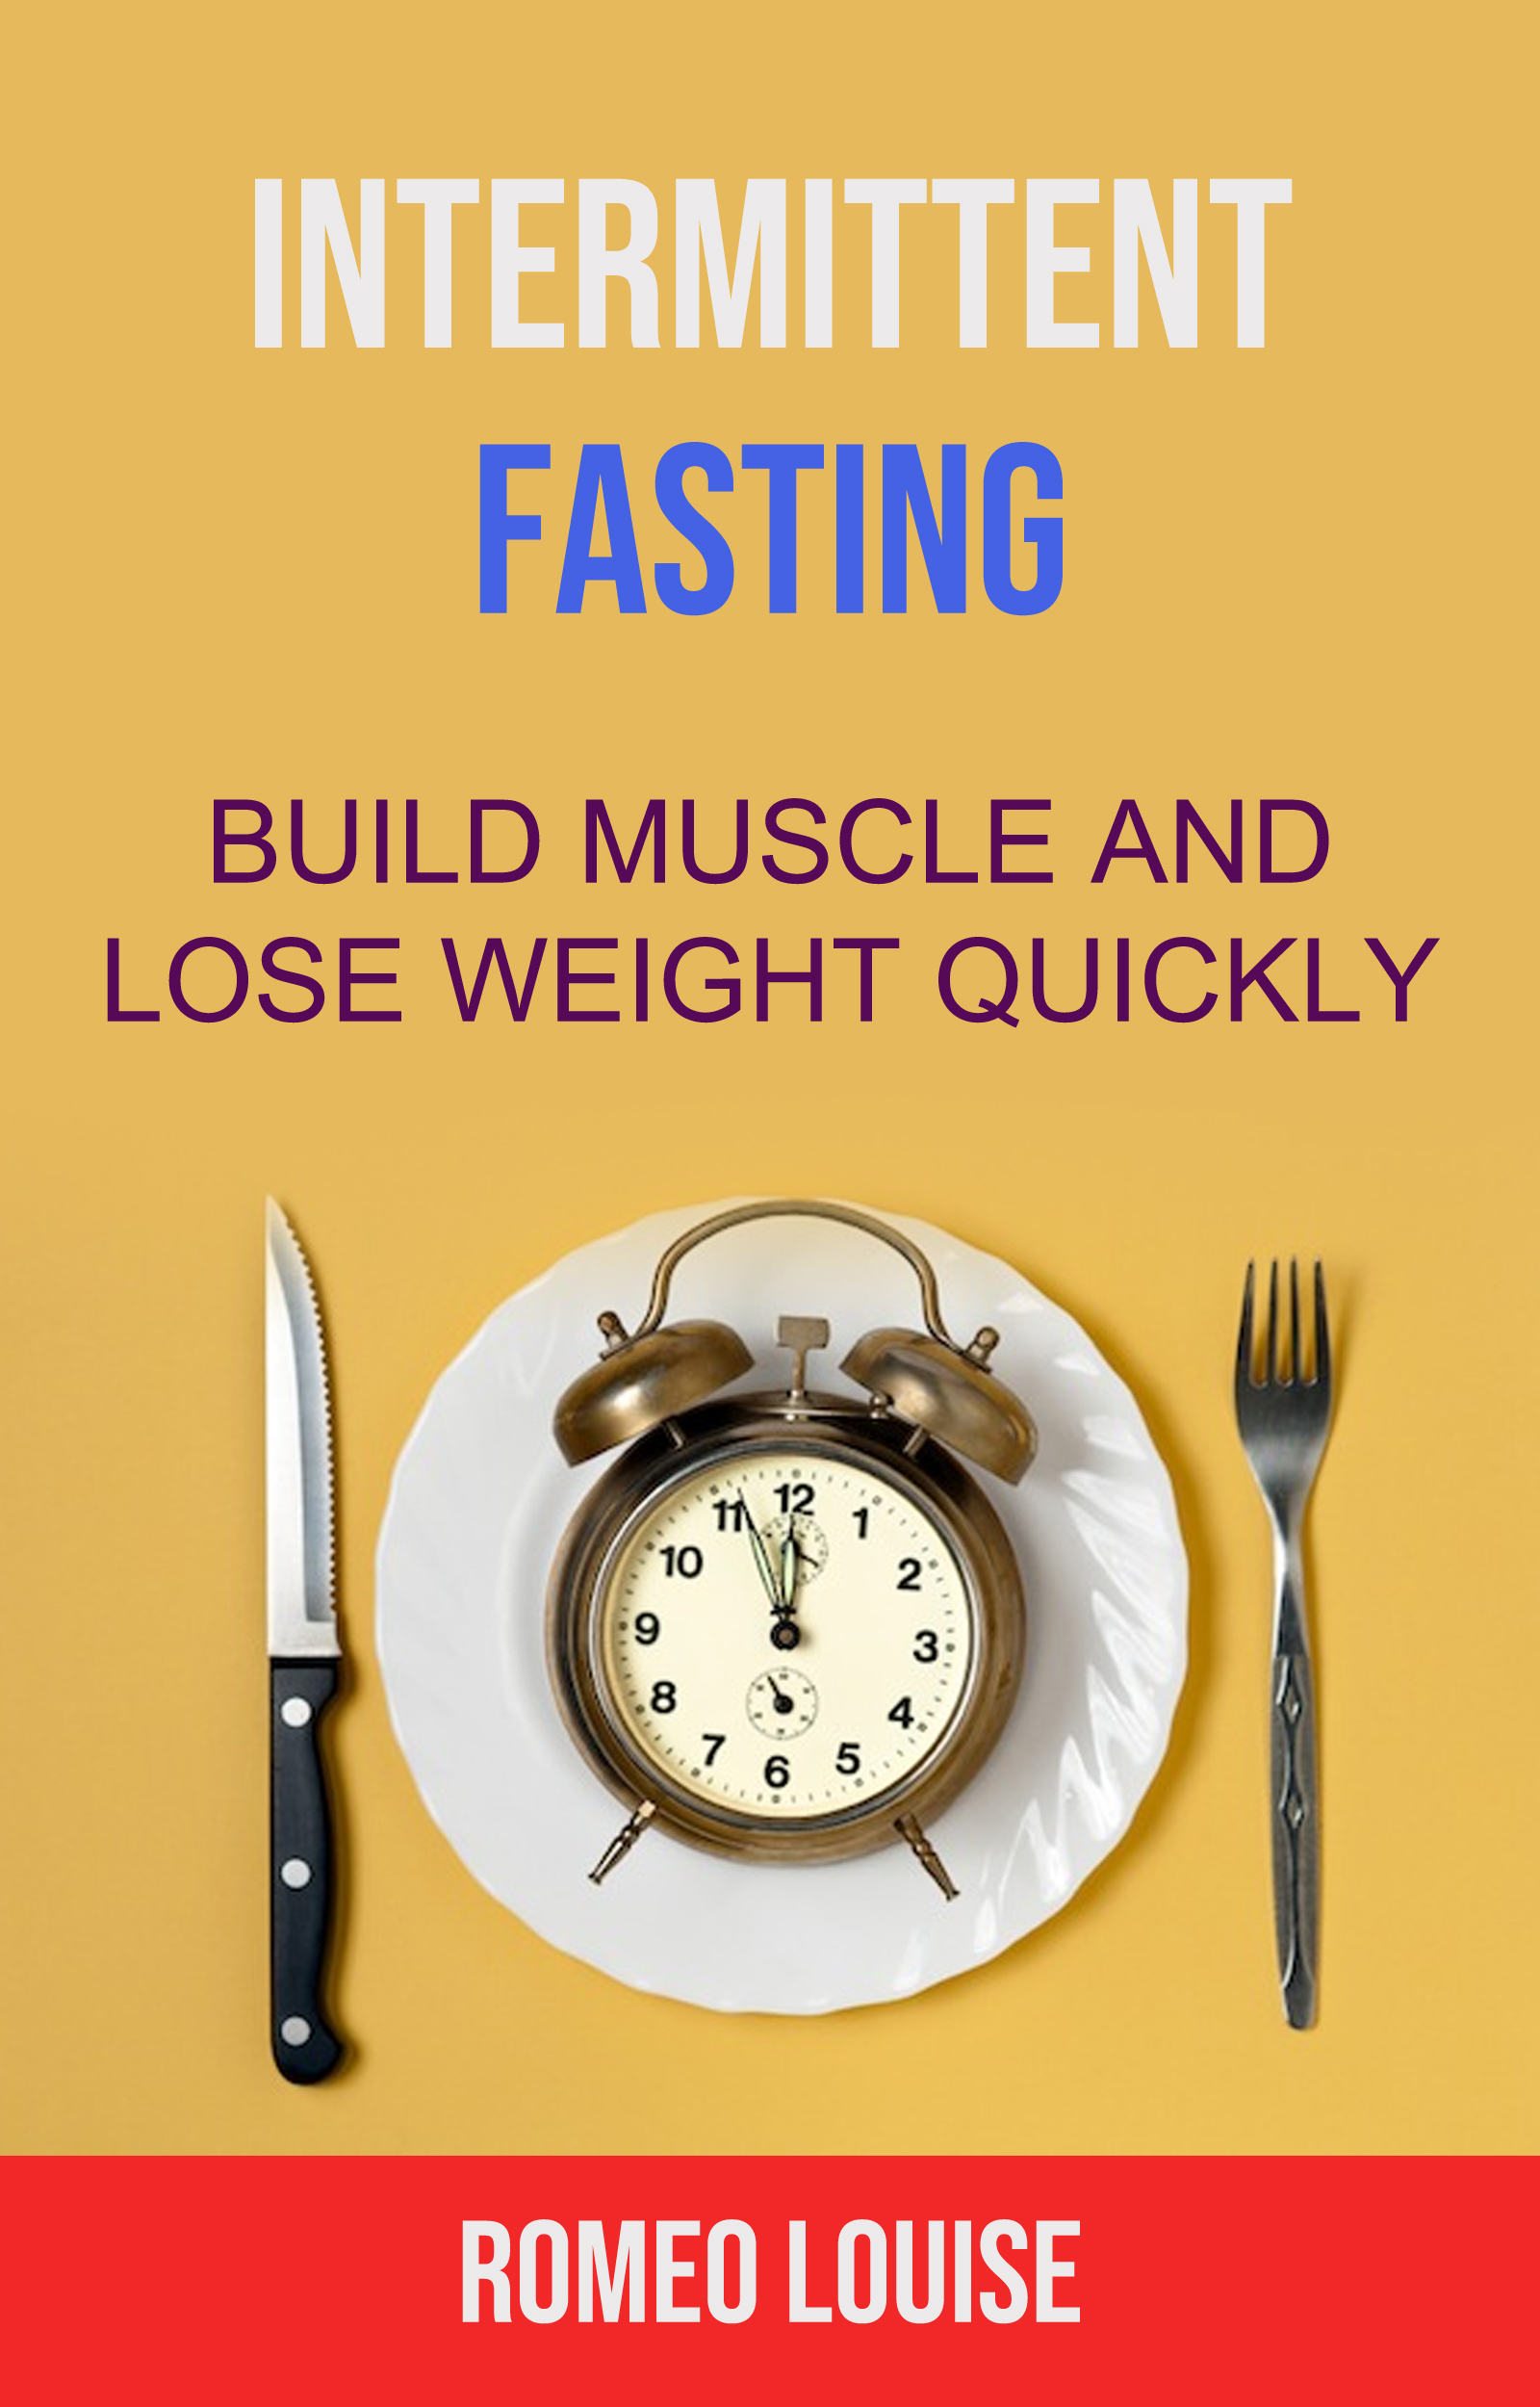 Intermittent fasting: build muscle and lose weight quickly